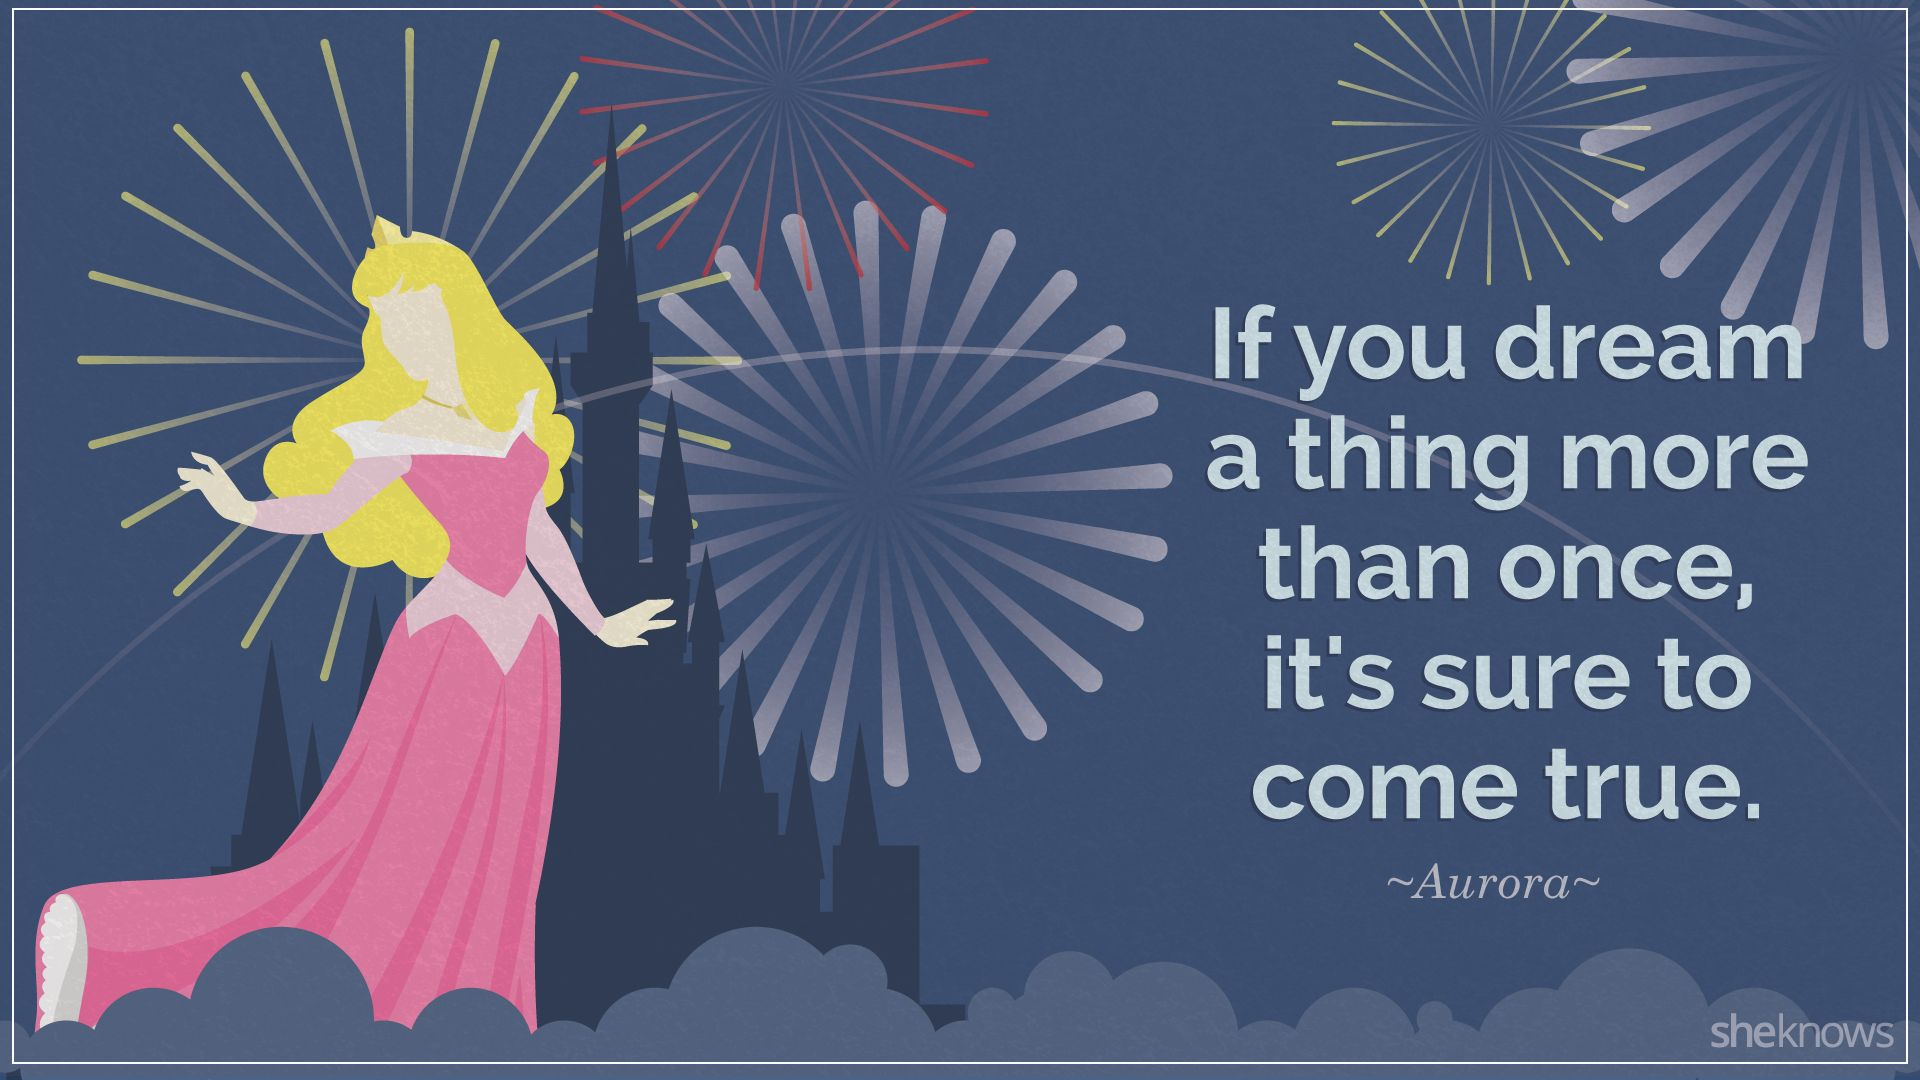 These Uplifting Sayings Prove Just How Wise Disney Princesses Really Are Princess Quotes Disney Quotes Disney Princess Quotes